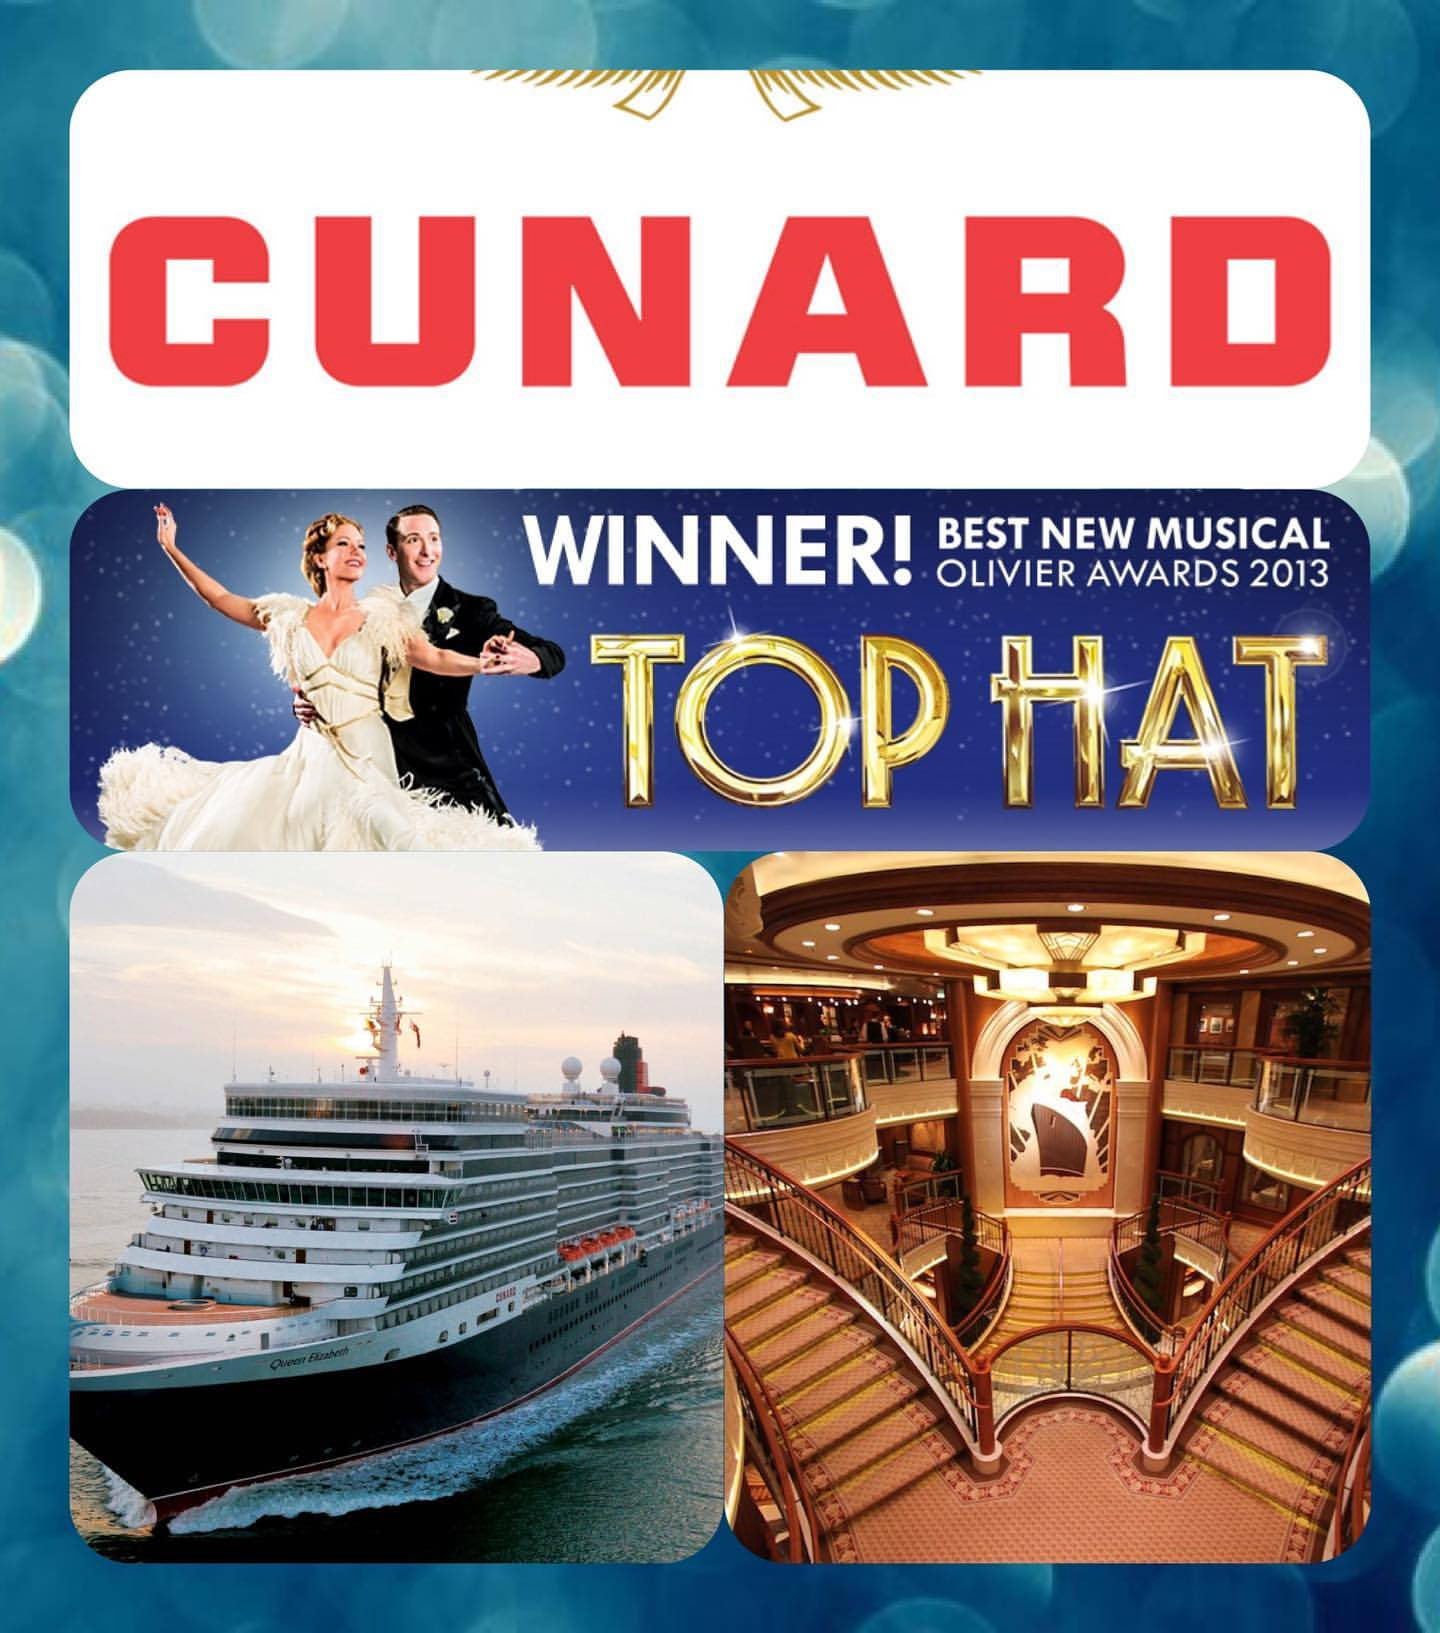 CRUISE - Vocalists & Dancers for CUNARD including new production of 'Top Hat' - LONDON OPEN CALLS